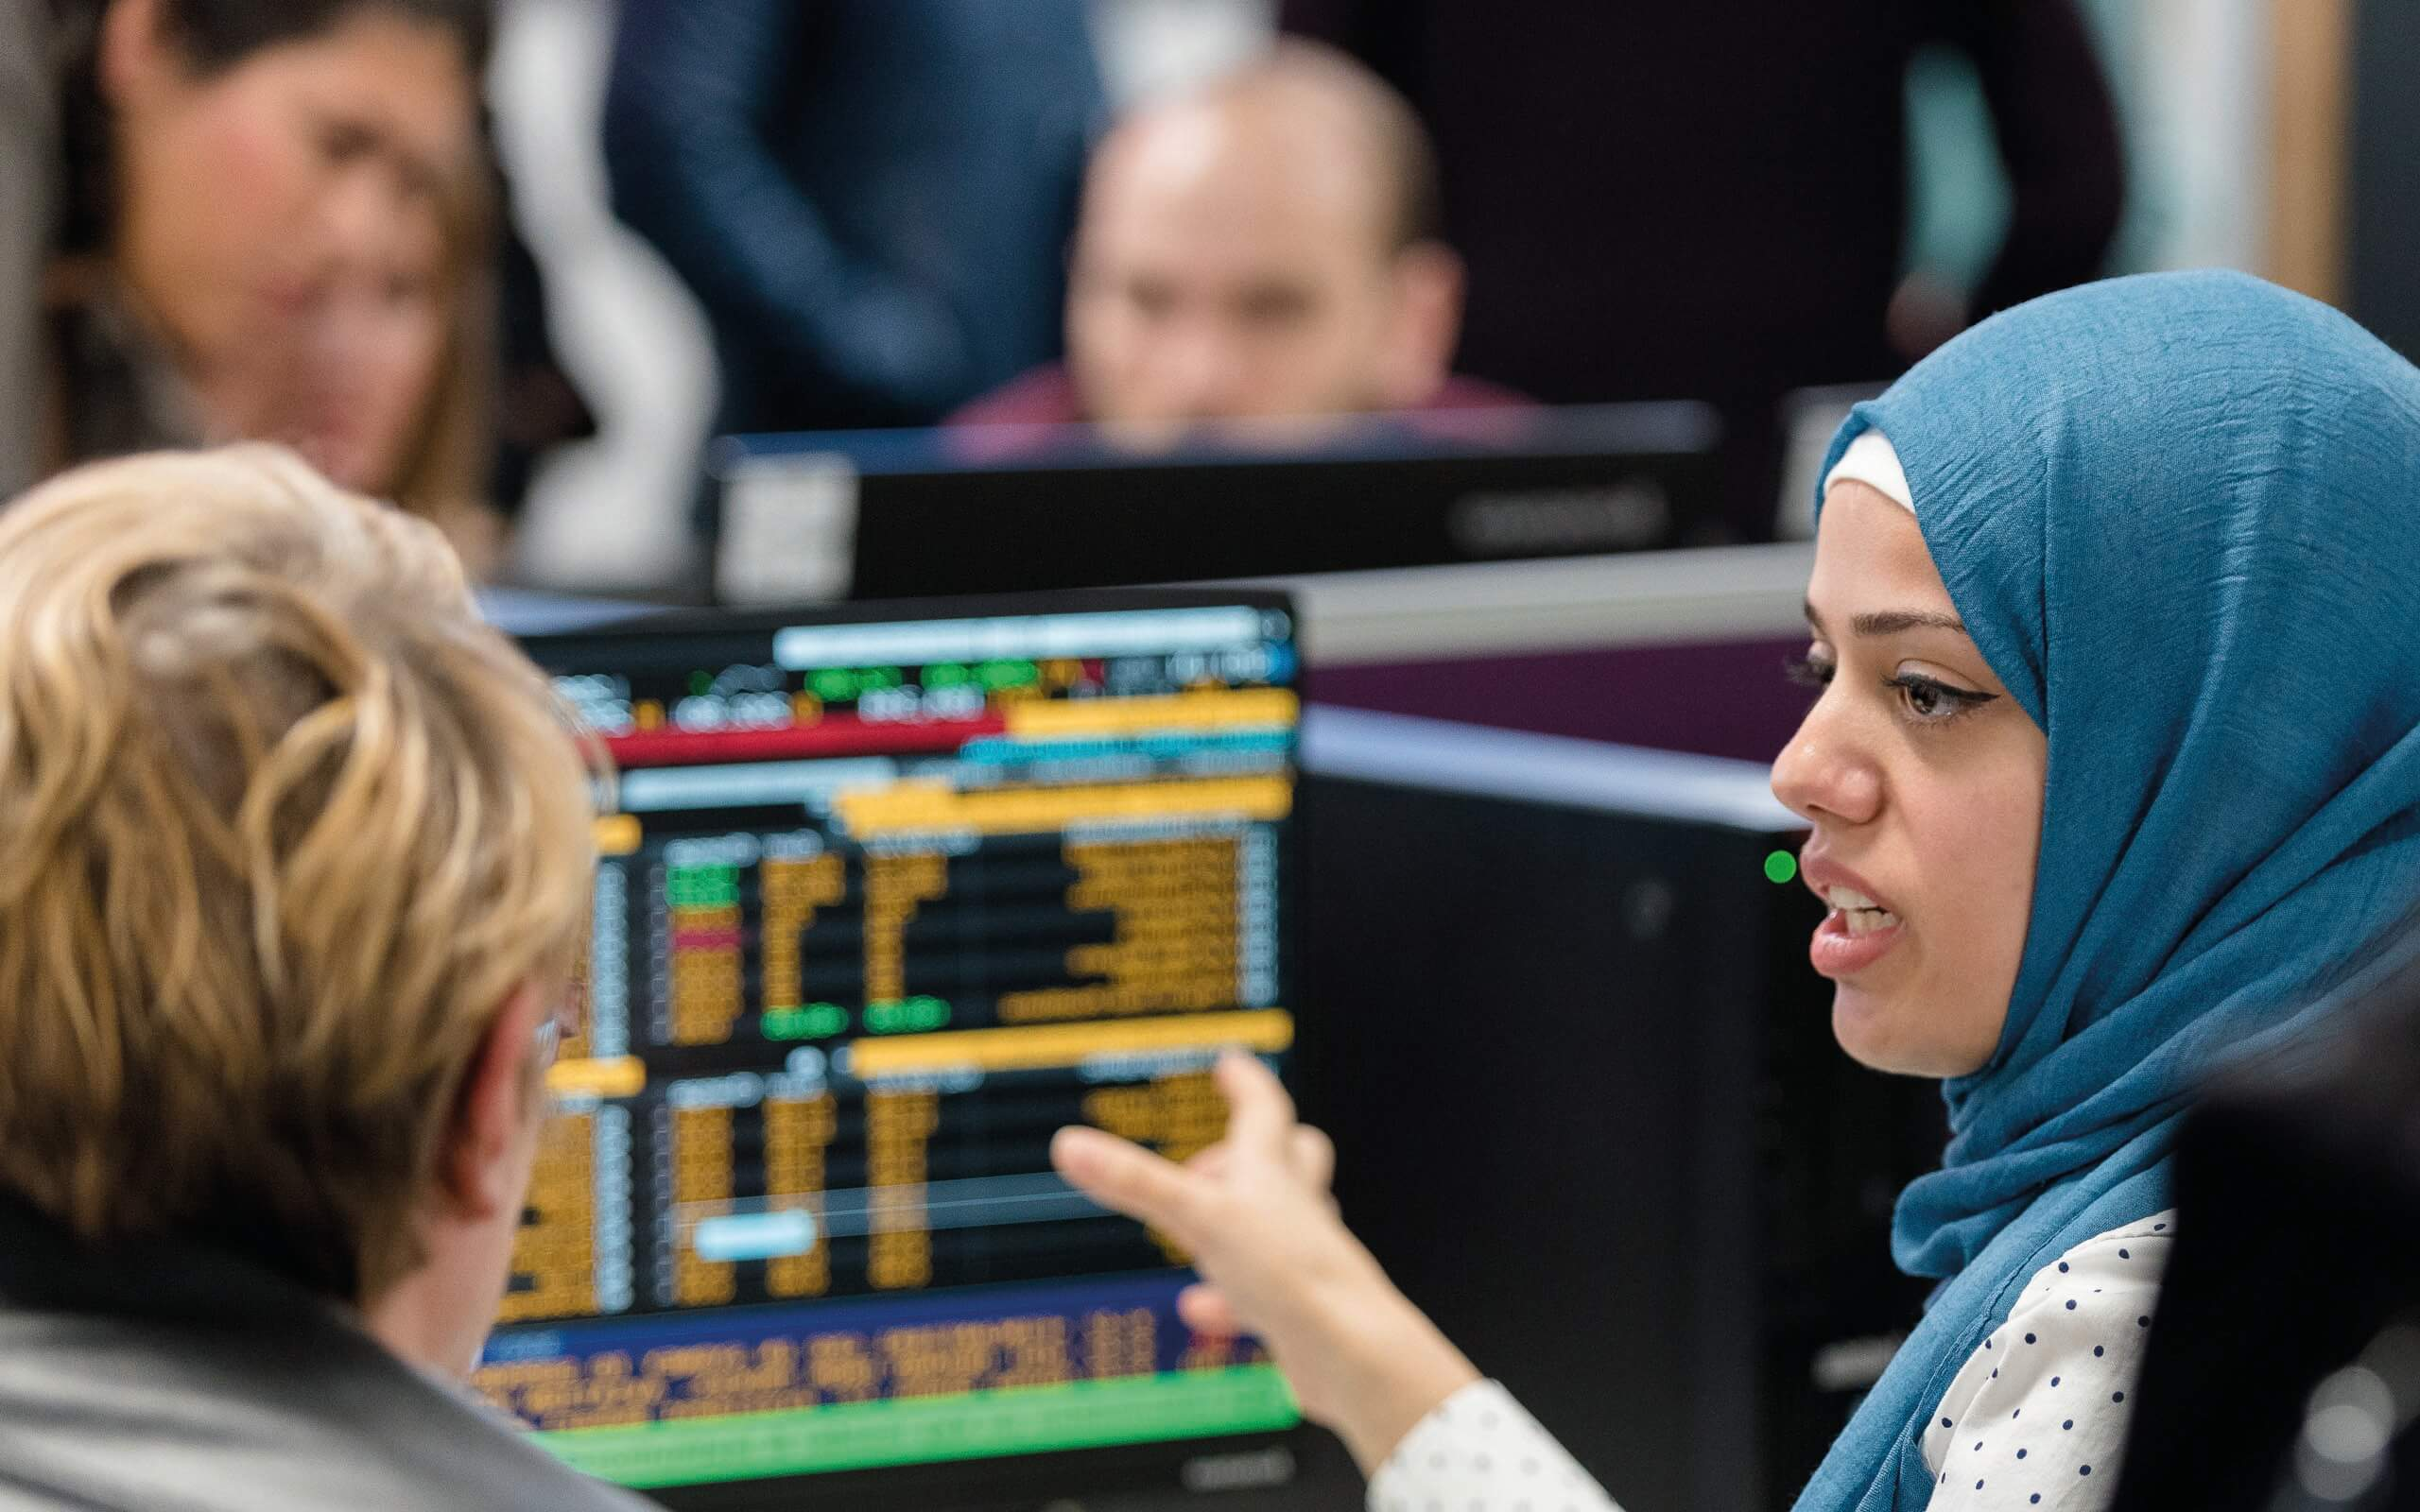 two ladies discussing accounting in front of stock market computers